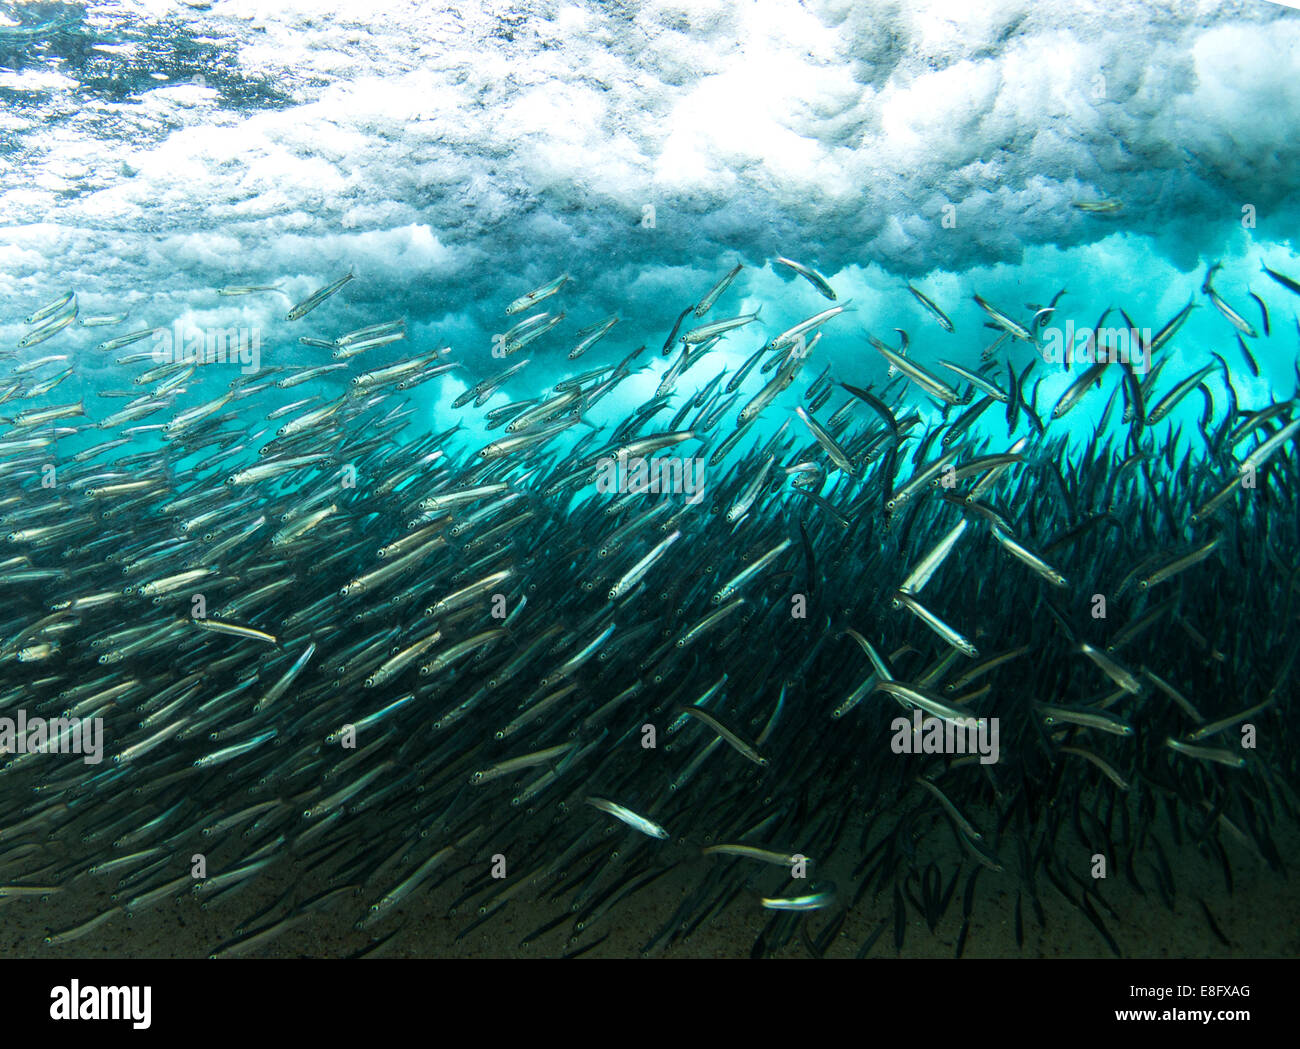 School of fish underwater - Stock Image